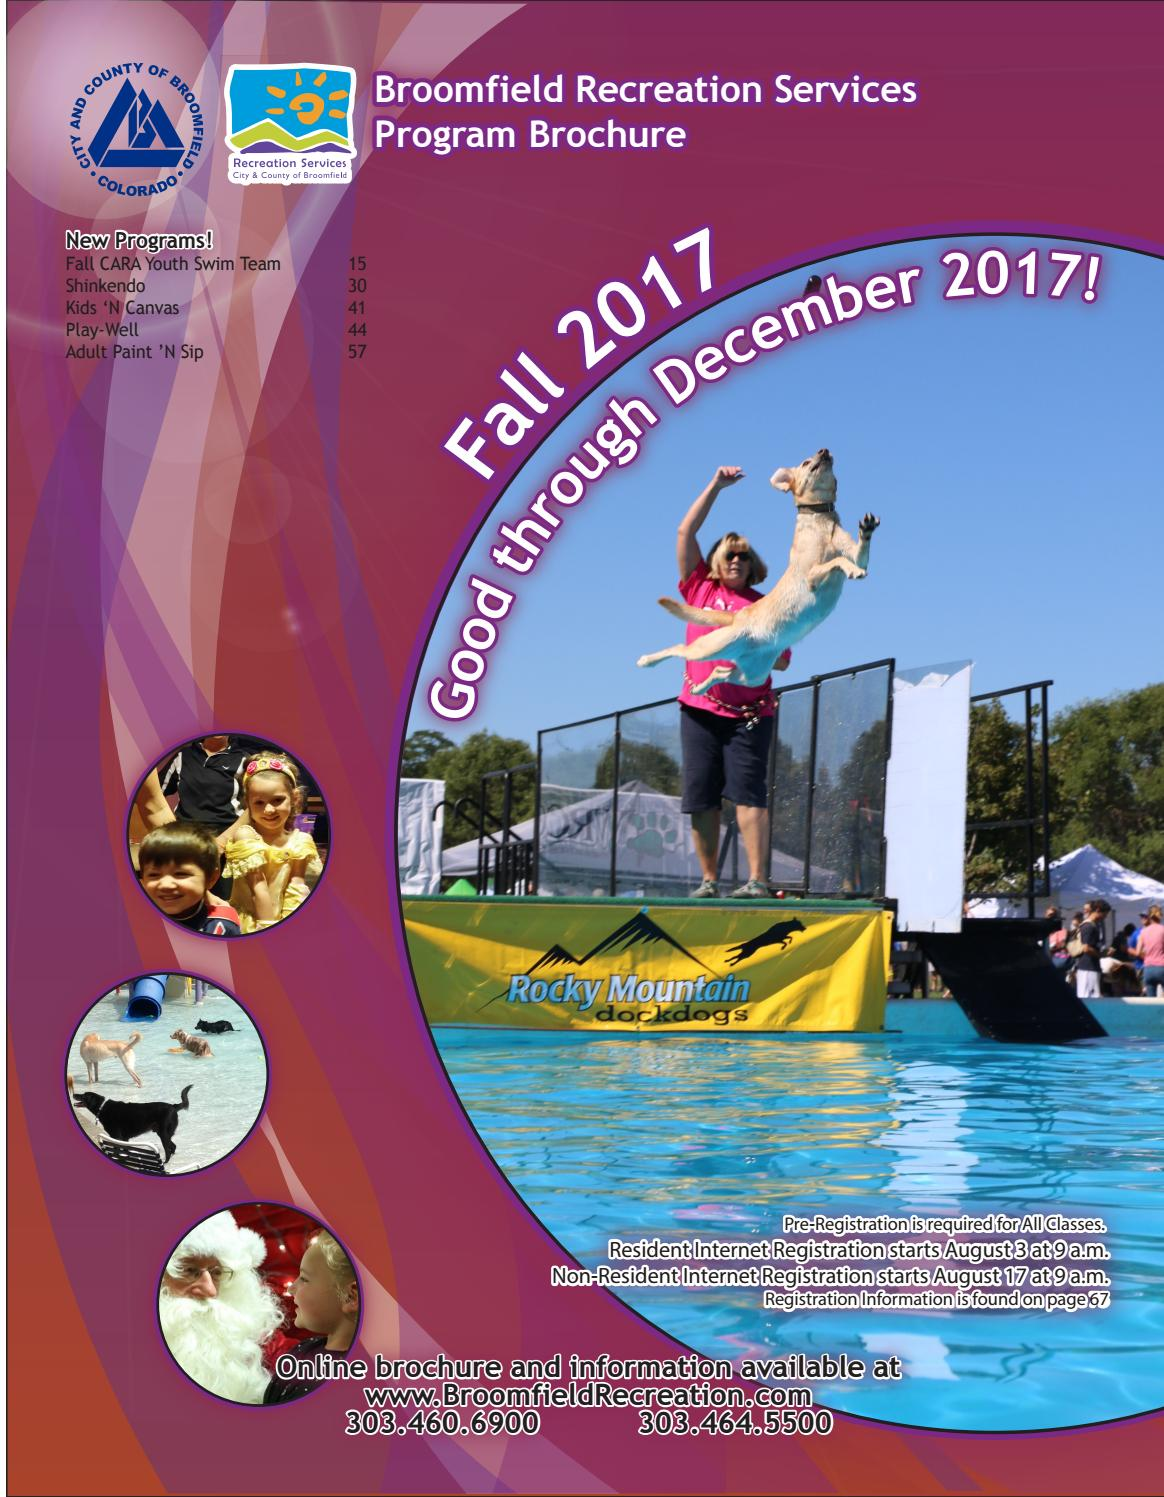 broomfield recreation brochure - fall 2017 by city and county of